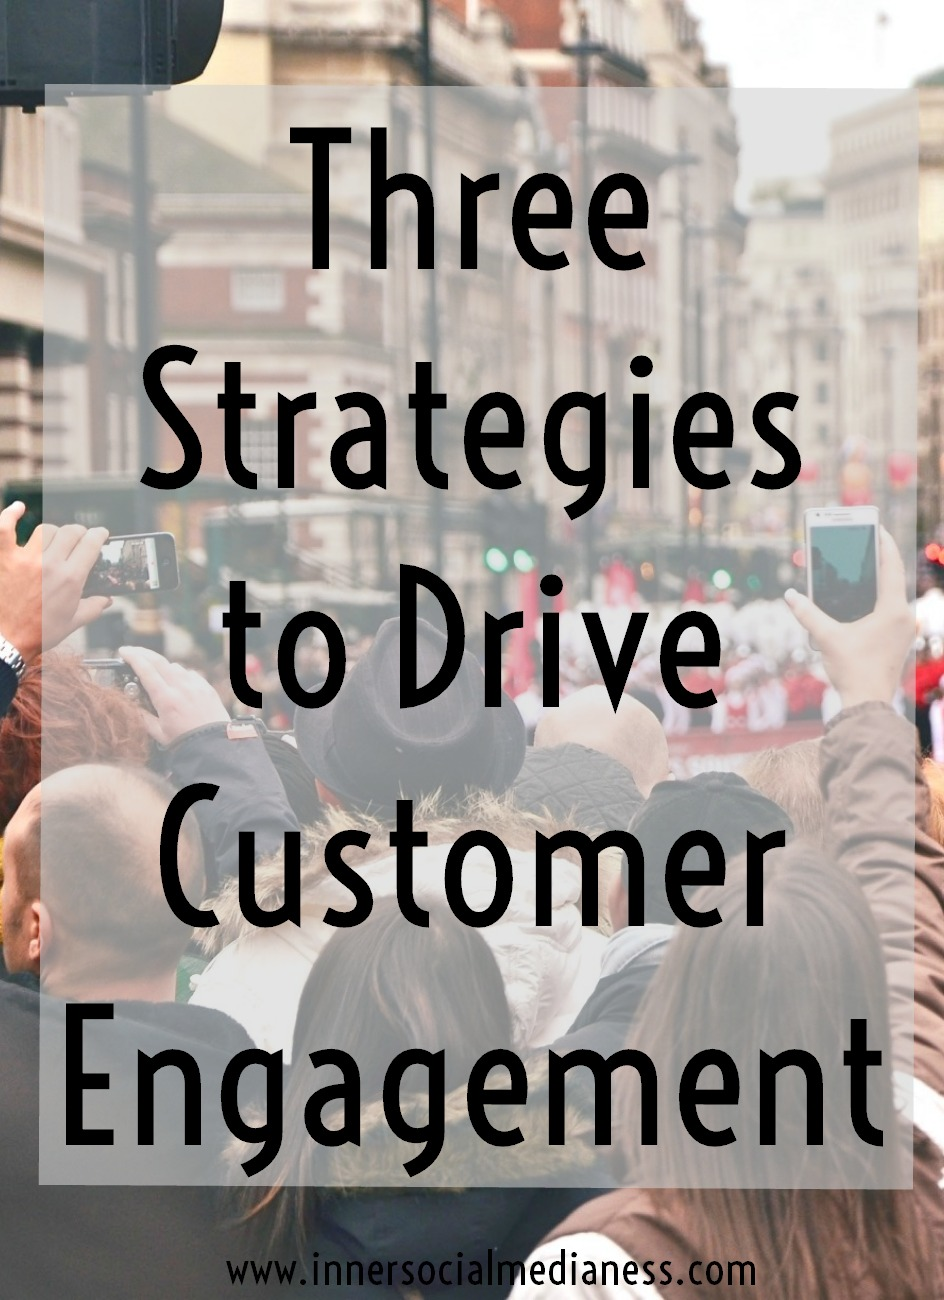 Three Strategies to Drive Customer Engagement - Other than reading posts and replying to comments when someone asks a questions, how do we really engage with more customers online? Try out these three social media strategies and see if you're able to connect better with your customers.